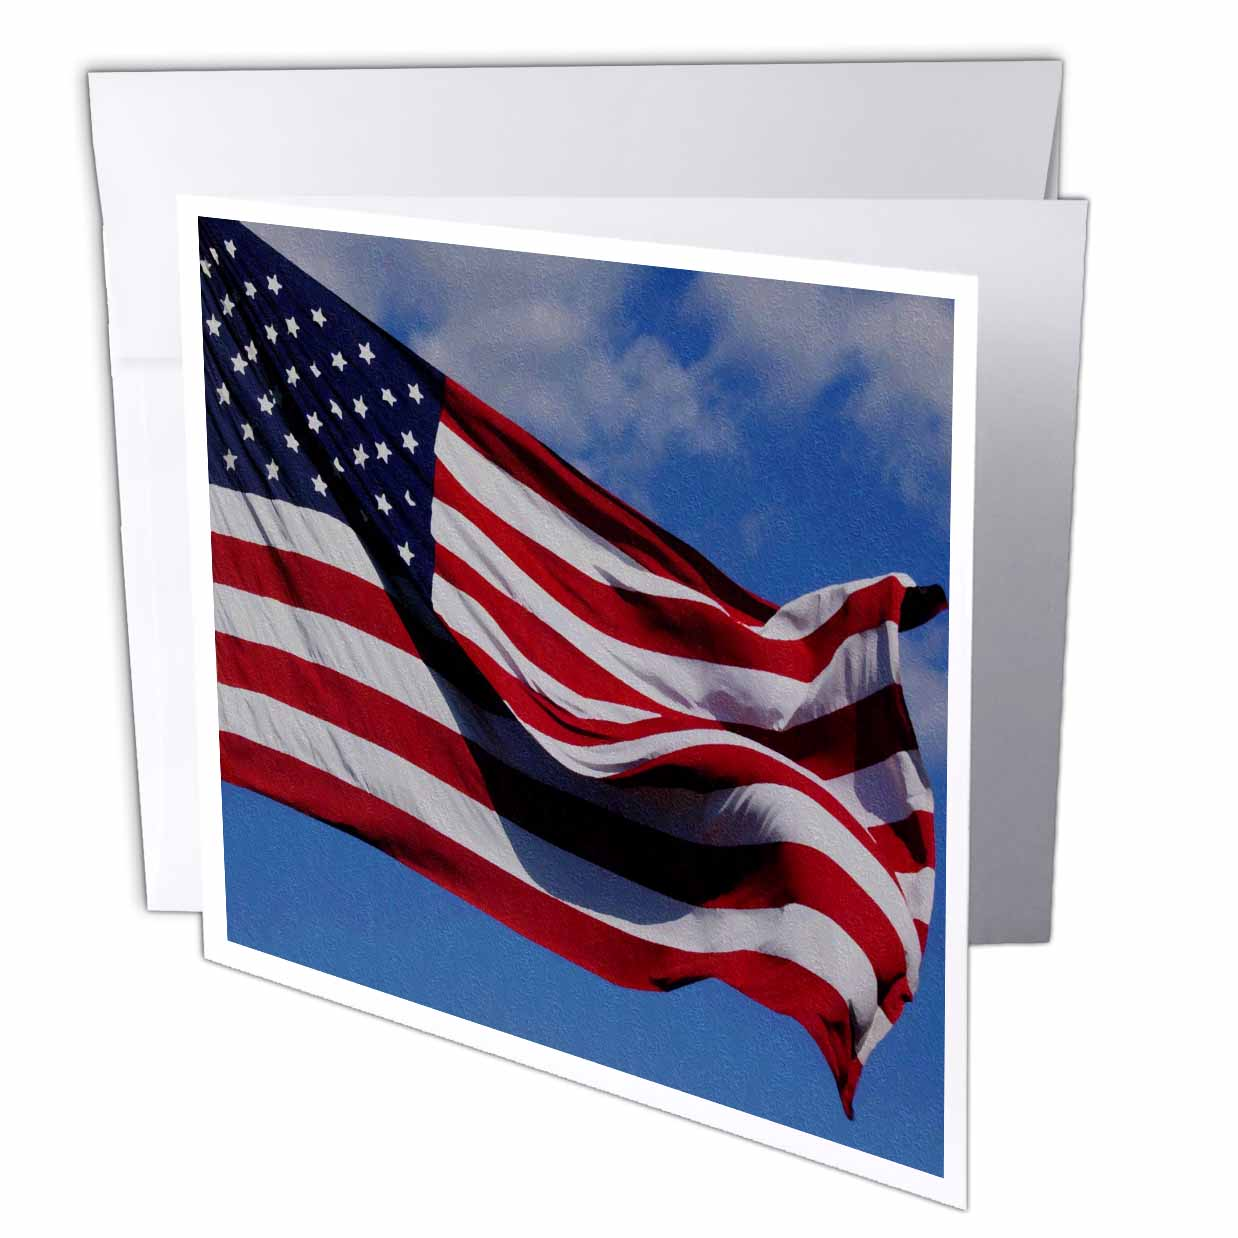 3dRose Patriotic American Flag Oil Painting, Greeting Cards, 6 x 6 inches, set of 12